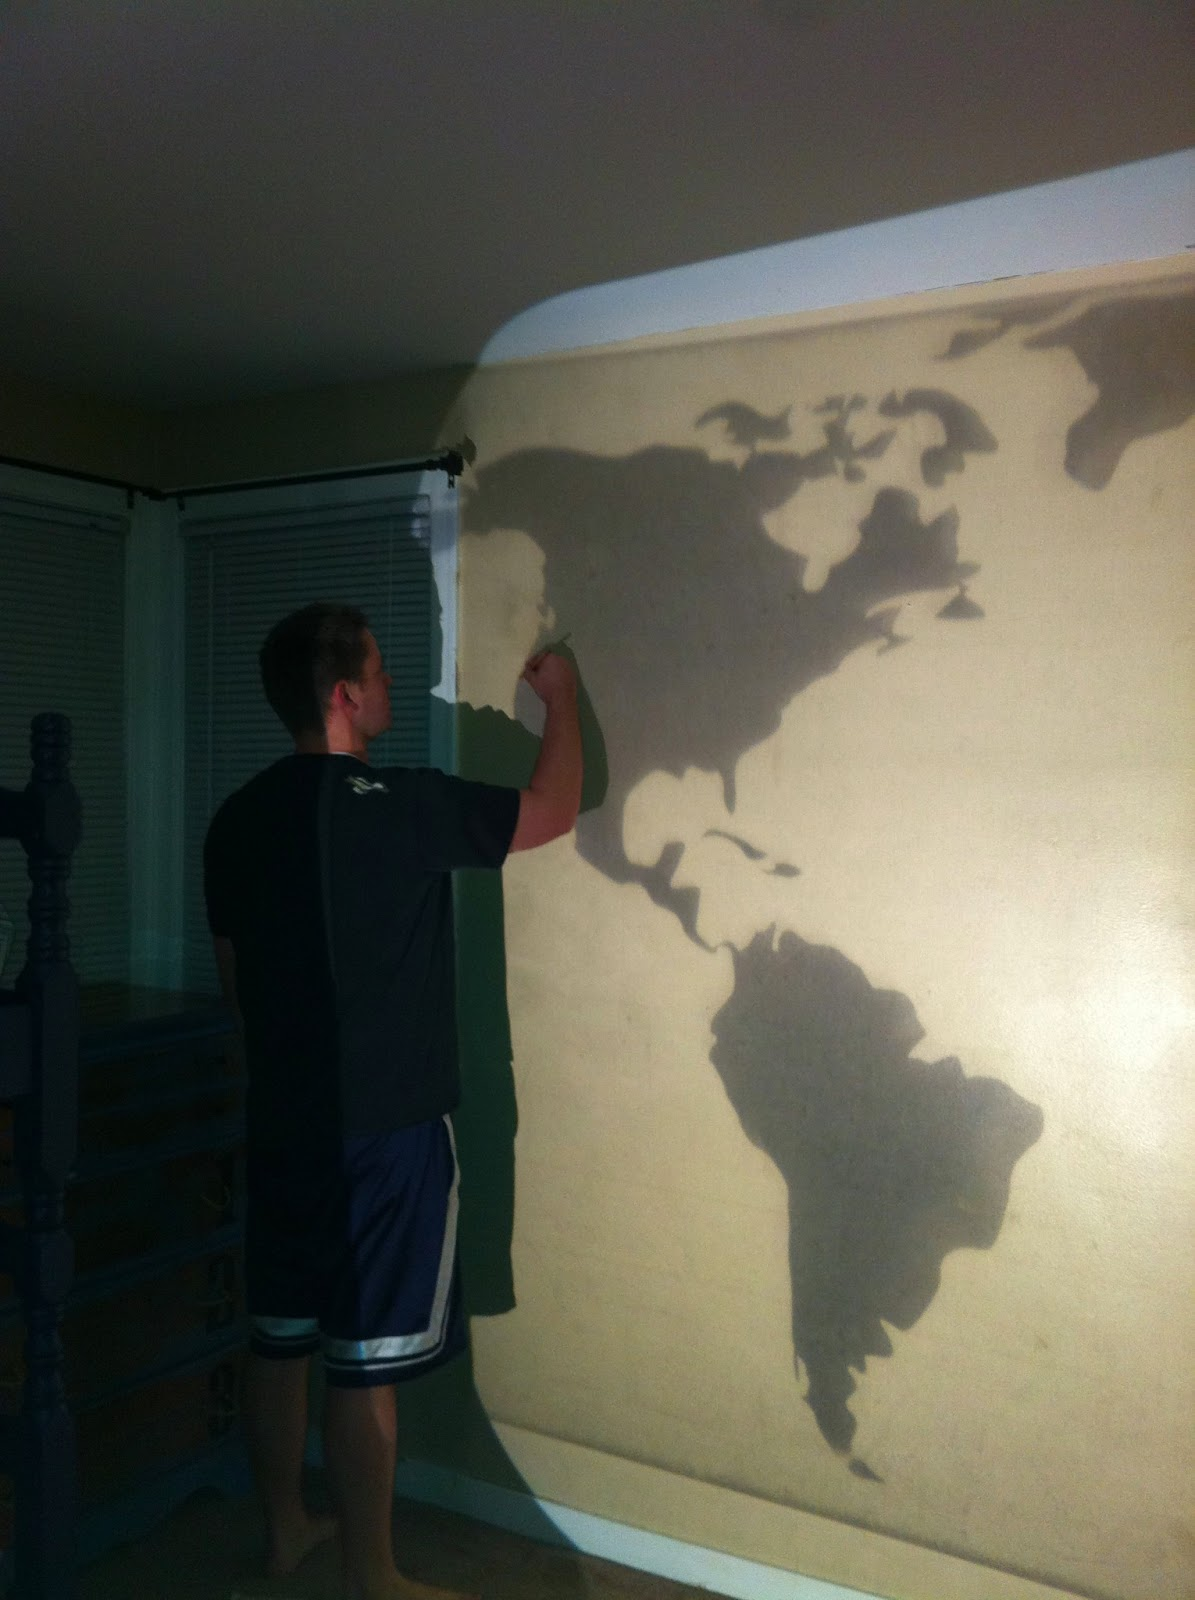 Diy world map wall mural classy clutter for Create a wall mural